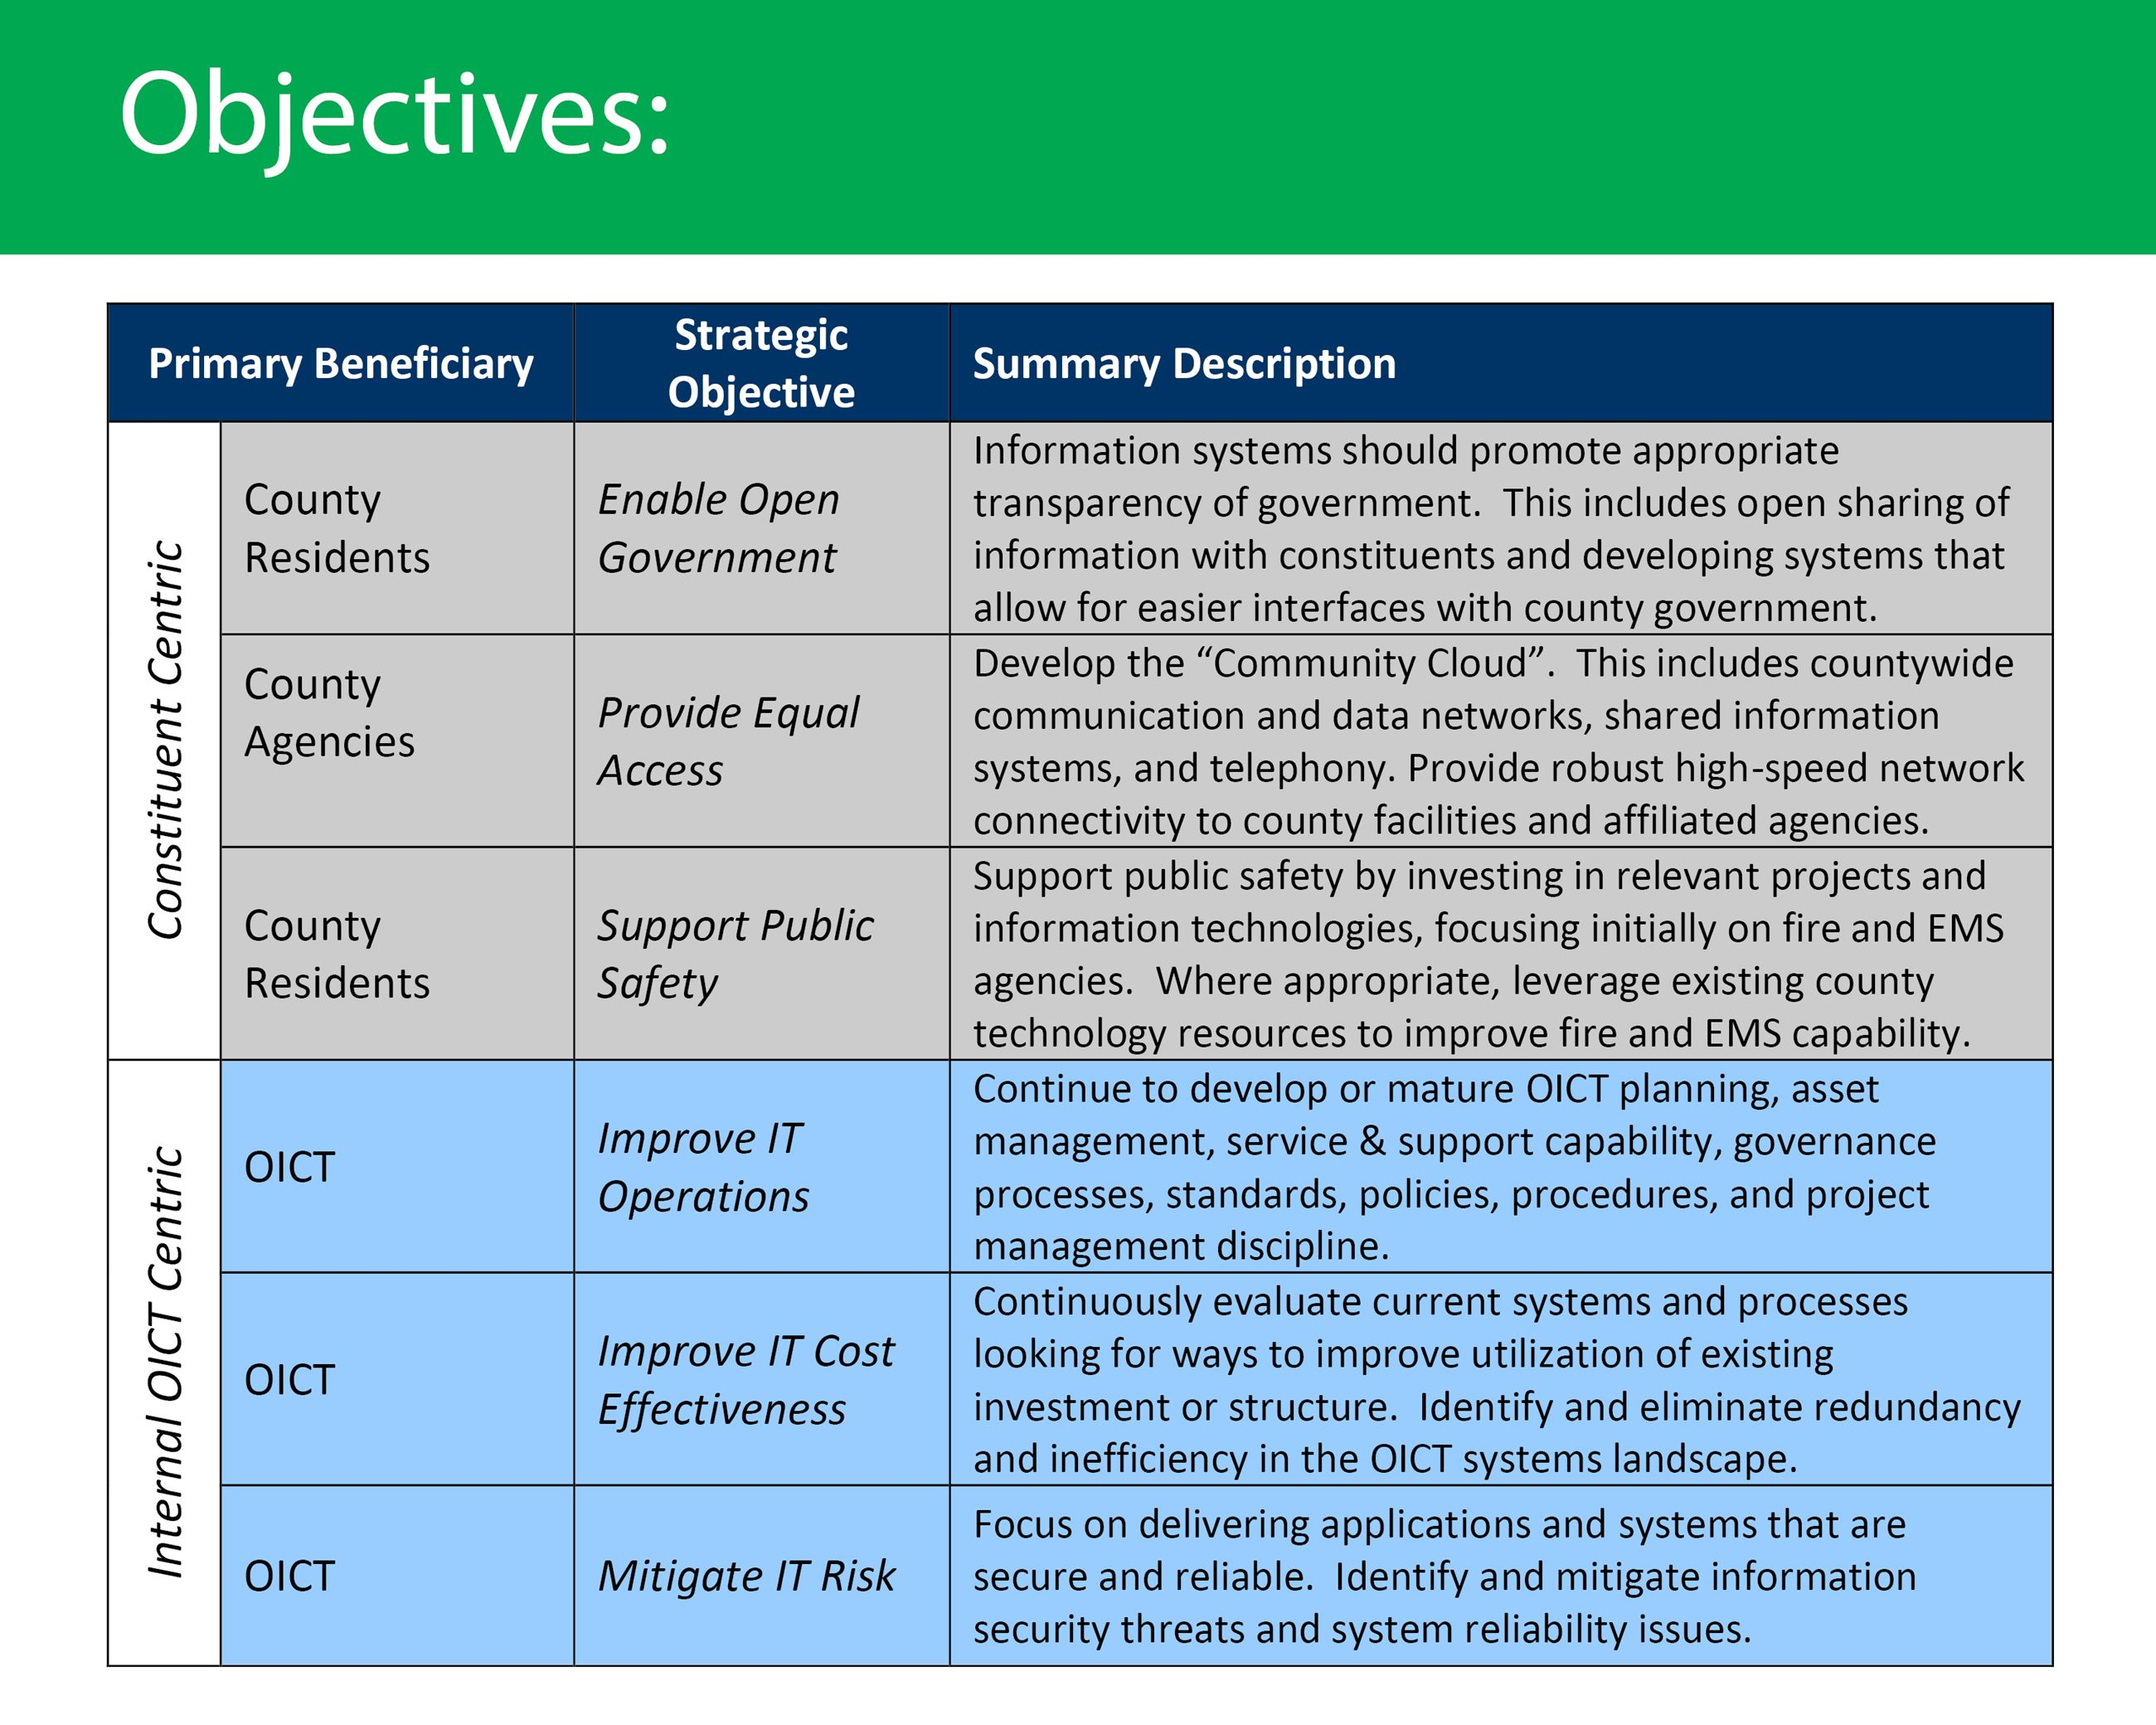 OICT Objectives